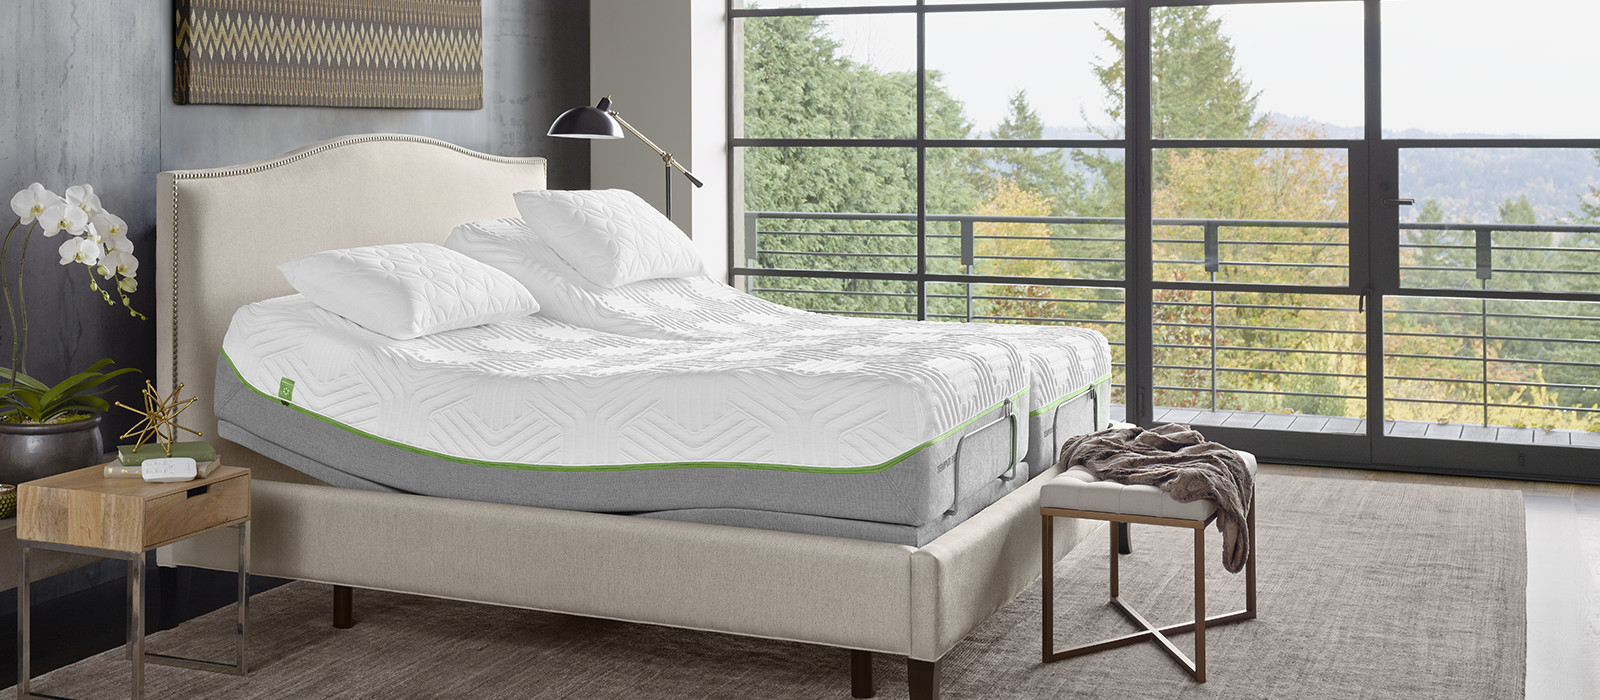 tempurergo plus adjustable base tempurpedic